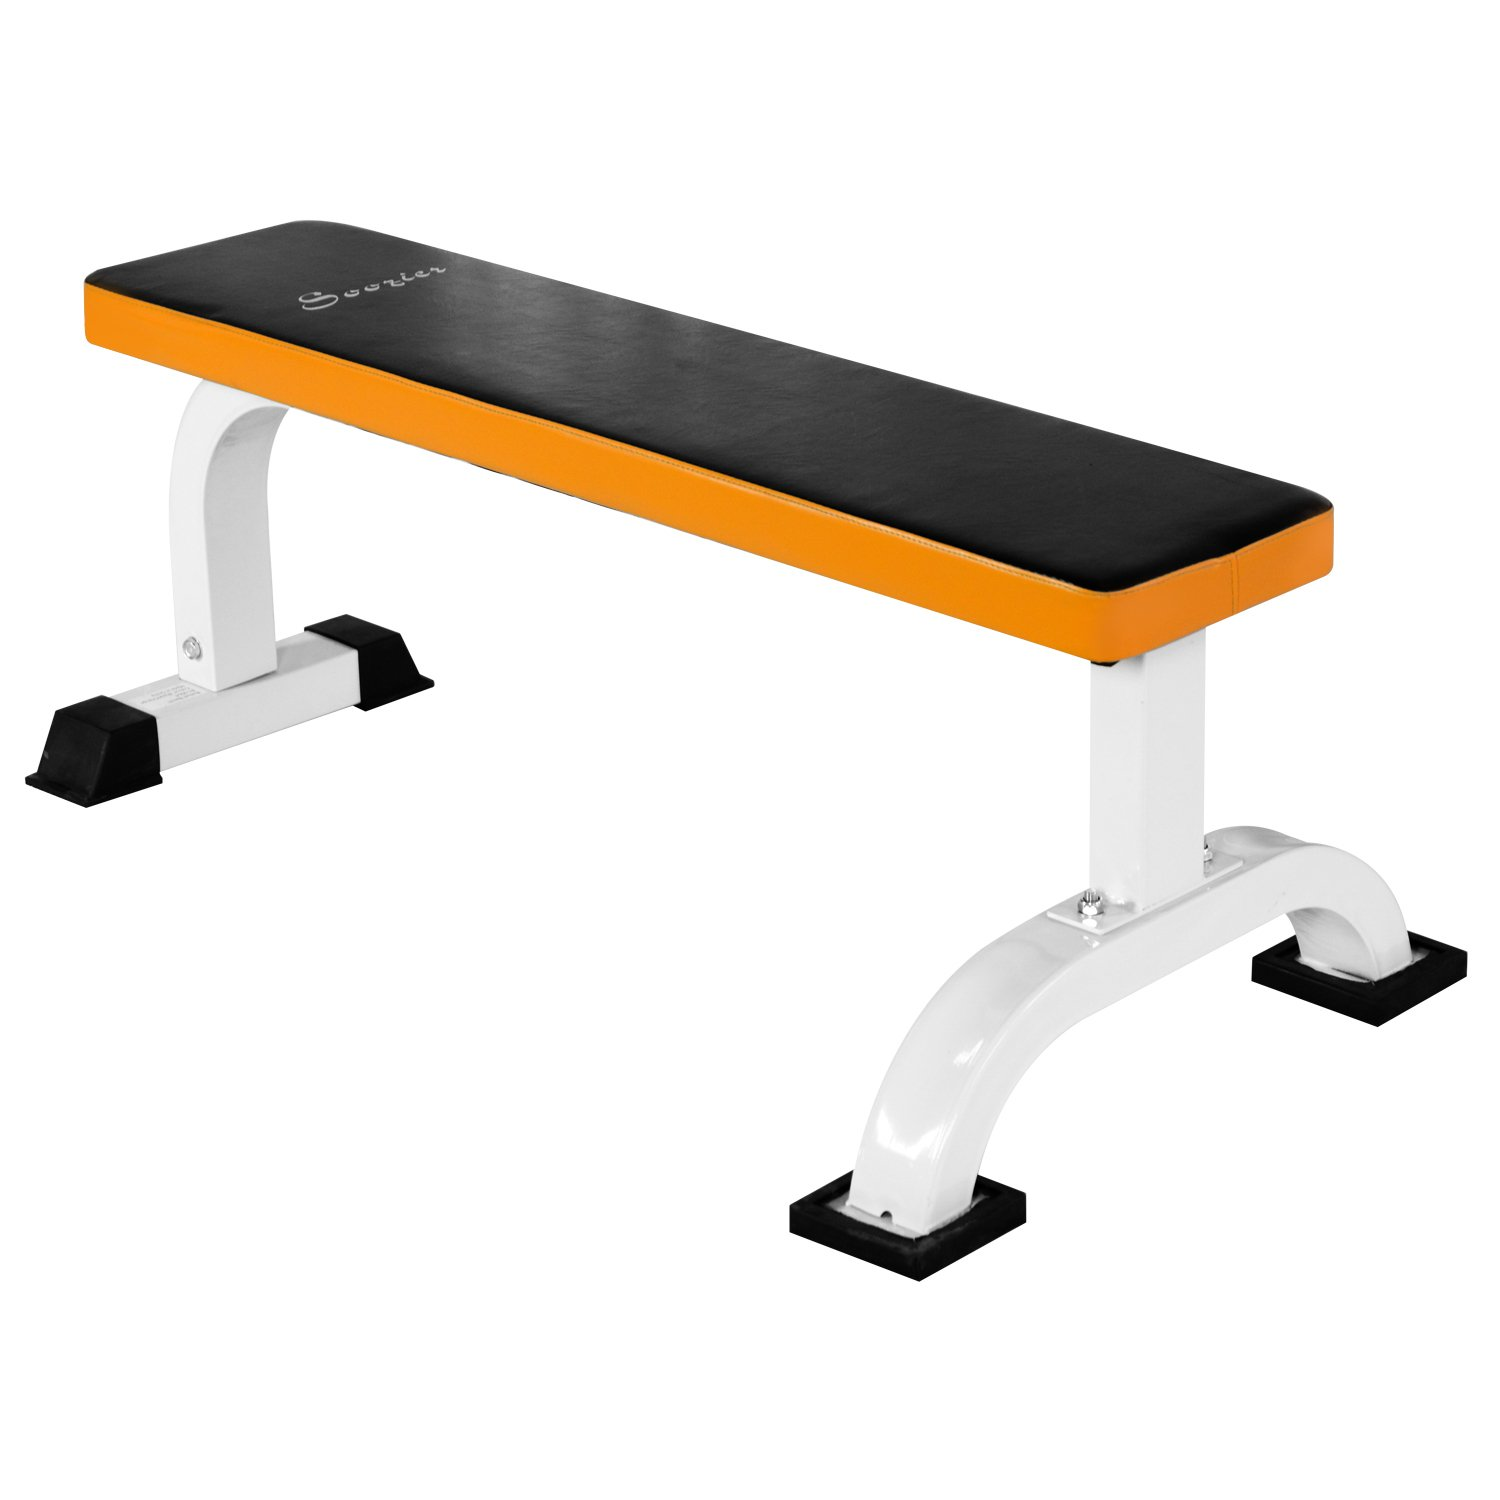 Peachy Homcom Barbell Flat Bench Press Dumbbell Weight Lifting Fitness Abs Workout Gym Bench Black Orange Alphanode Cool Chair Designs And Ideas Alphanodeonline